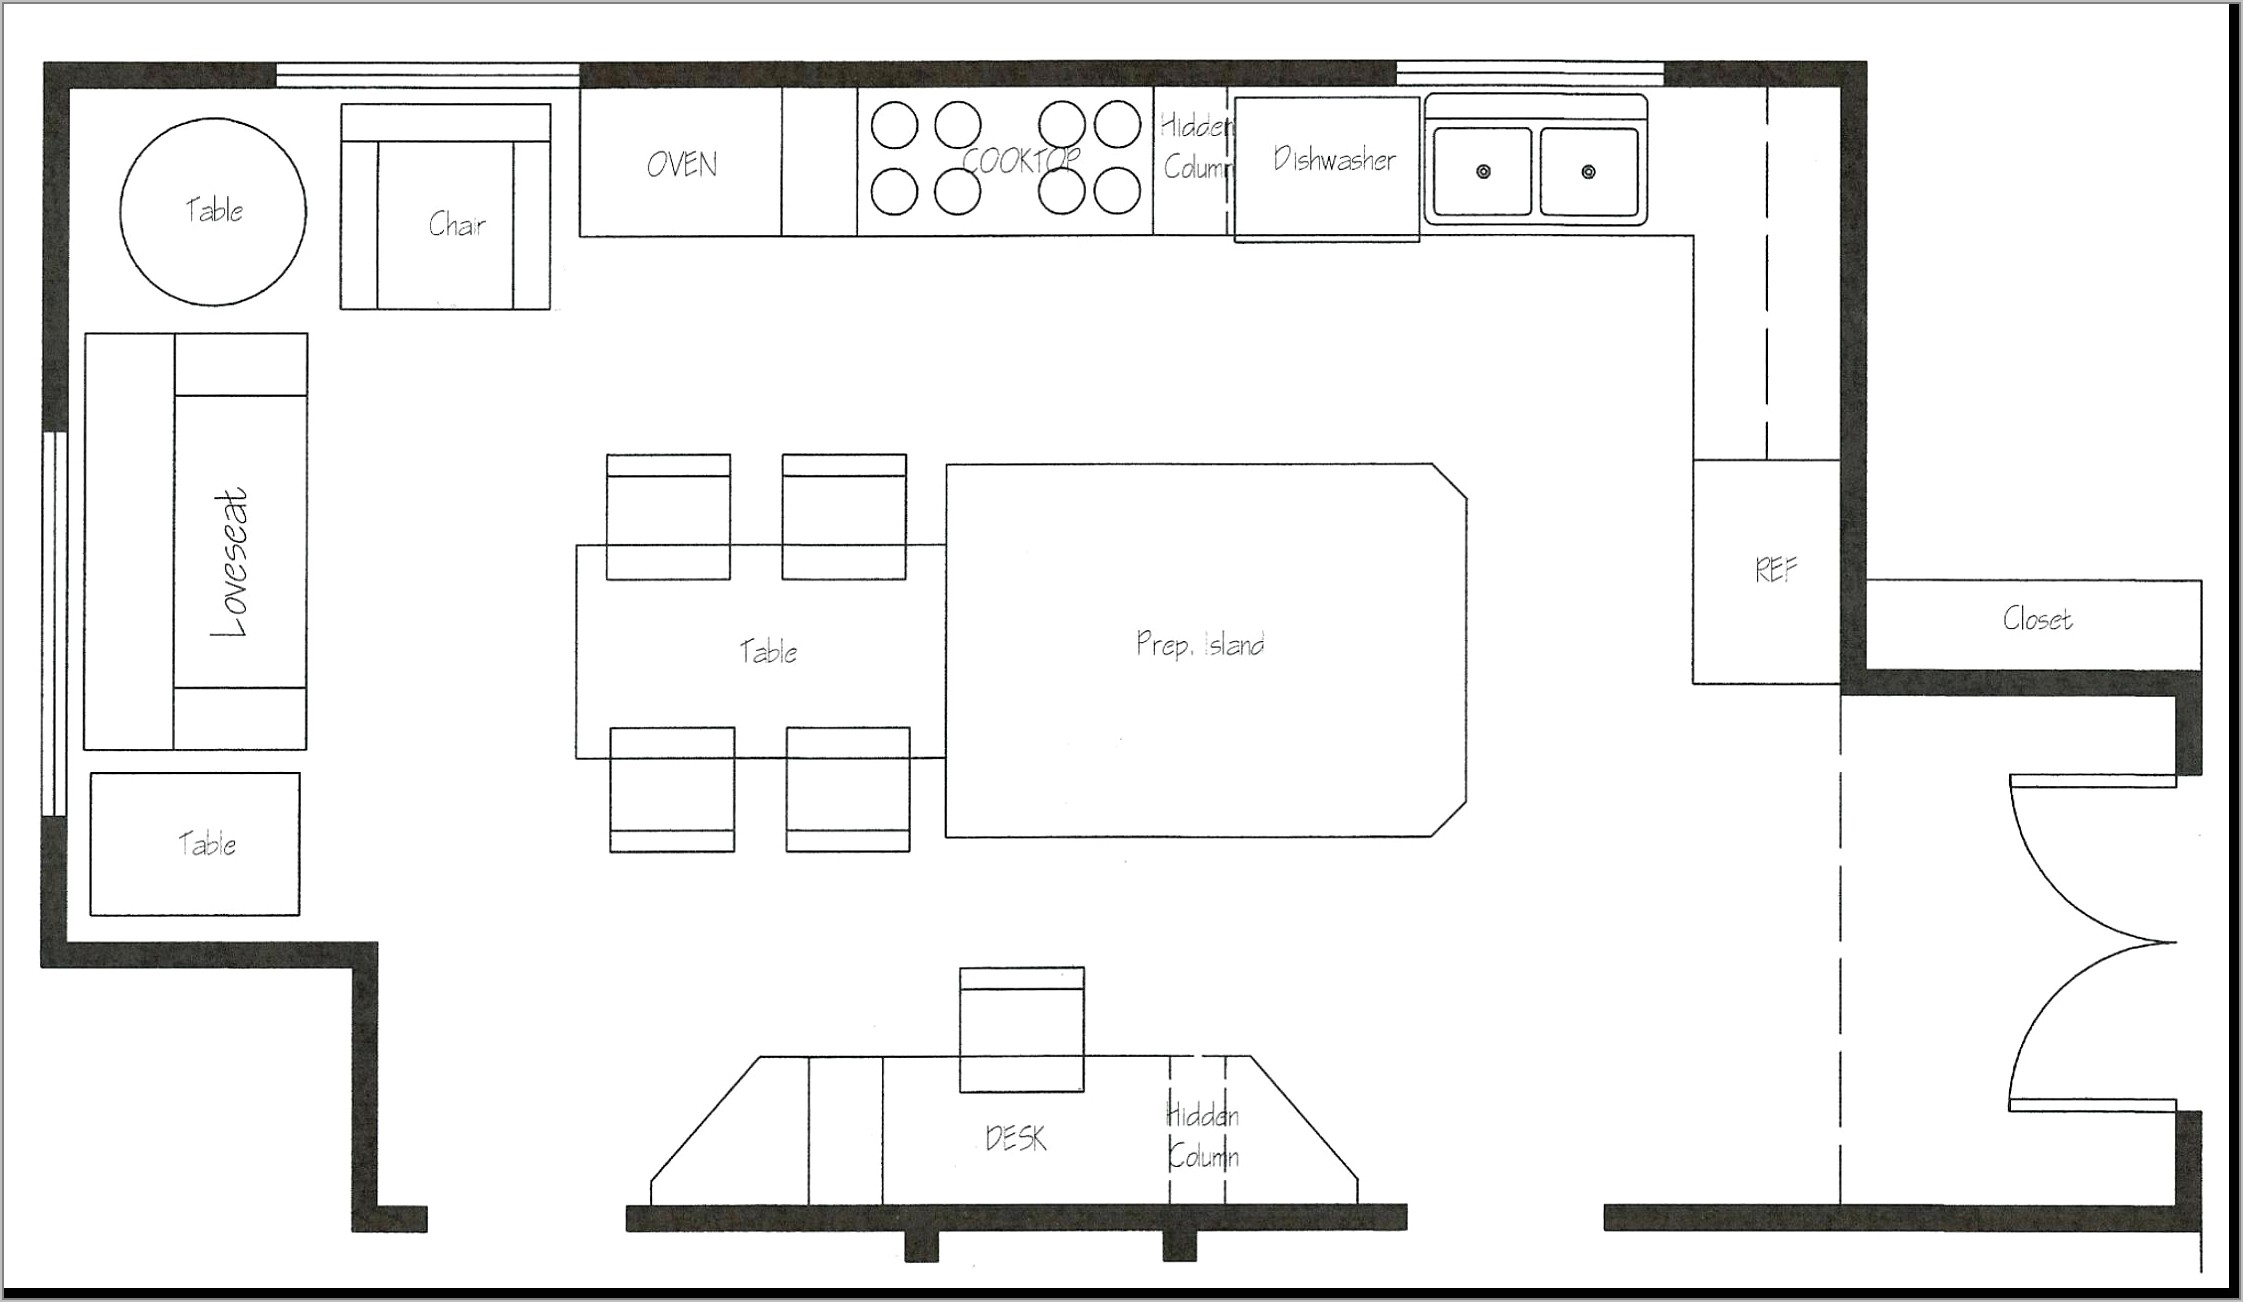 Restaurant Seating Layout Template